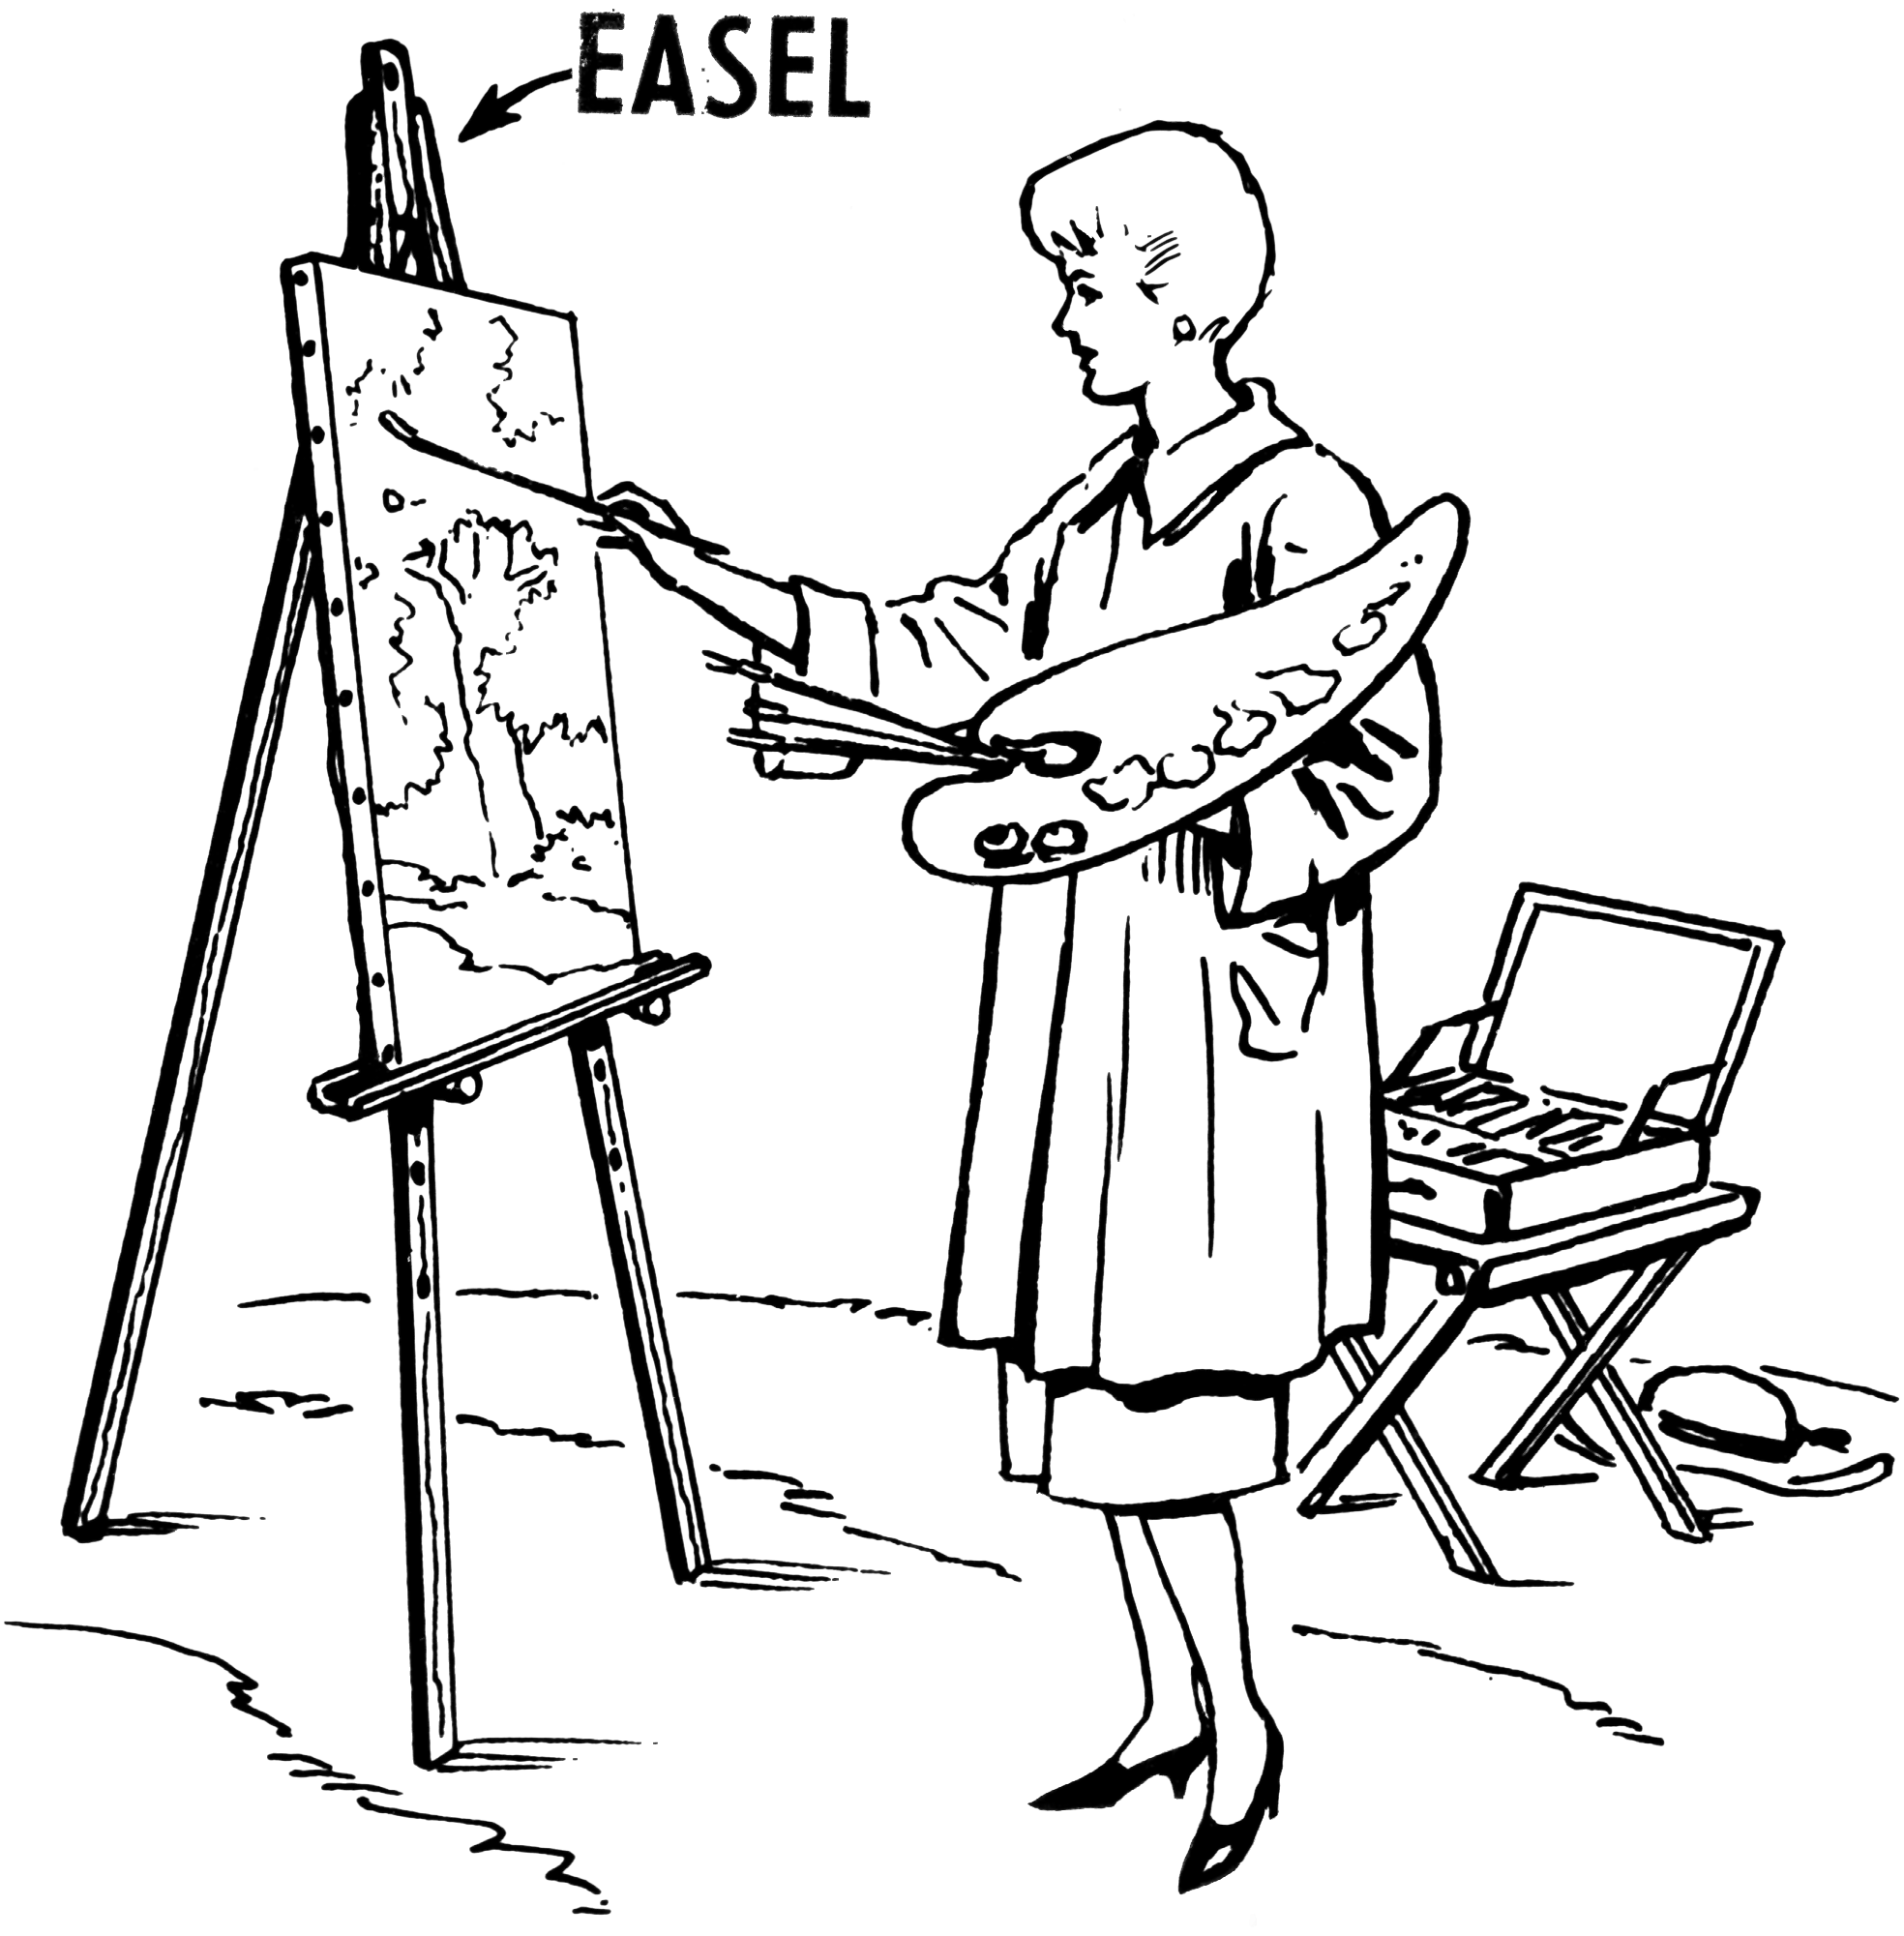 File easel 1 psf png wikimedia commons for Artiste dessin